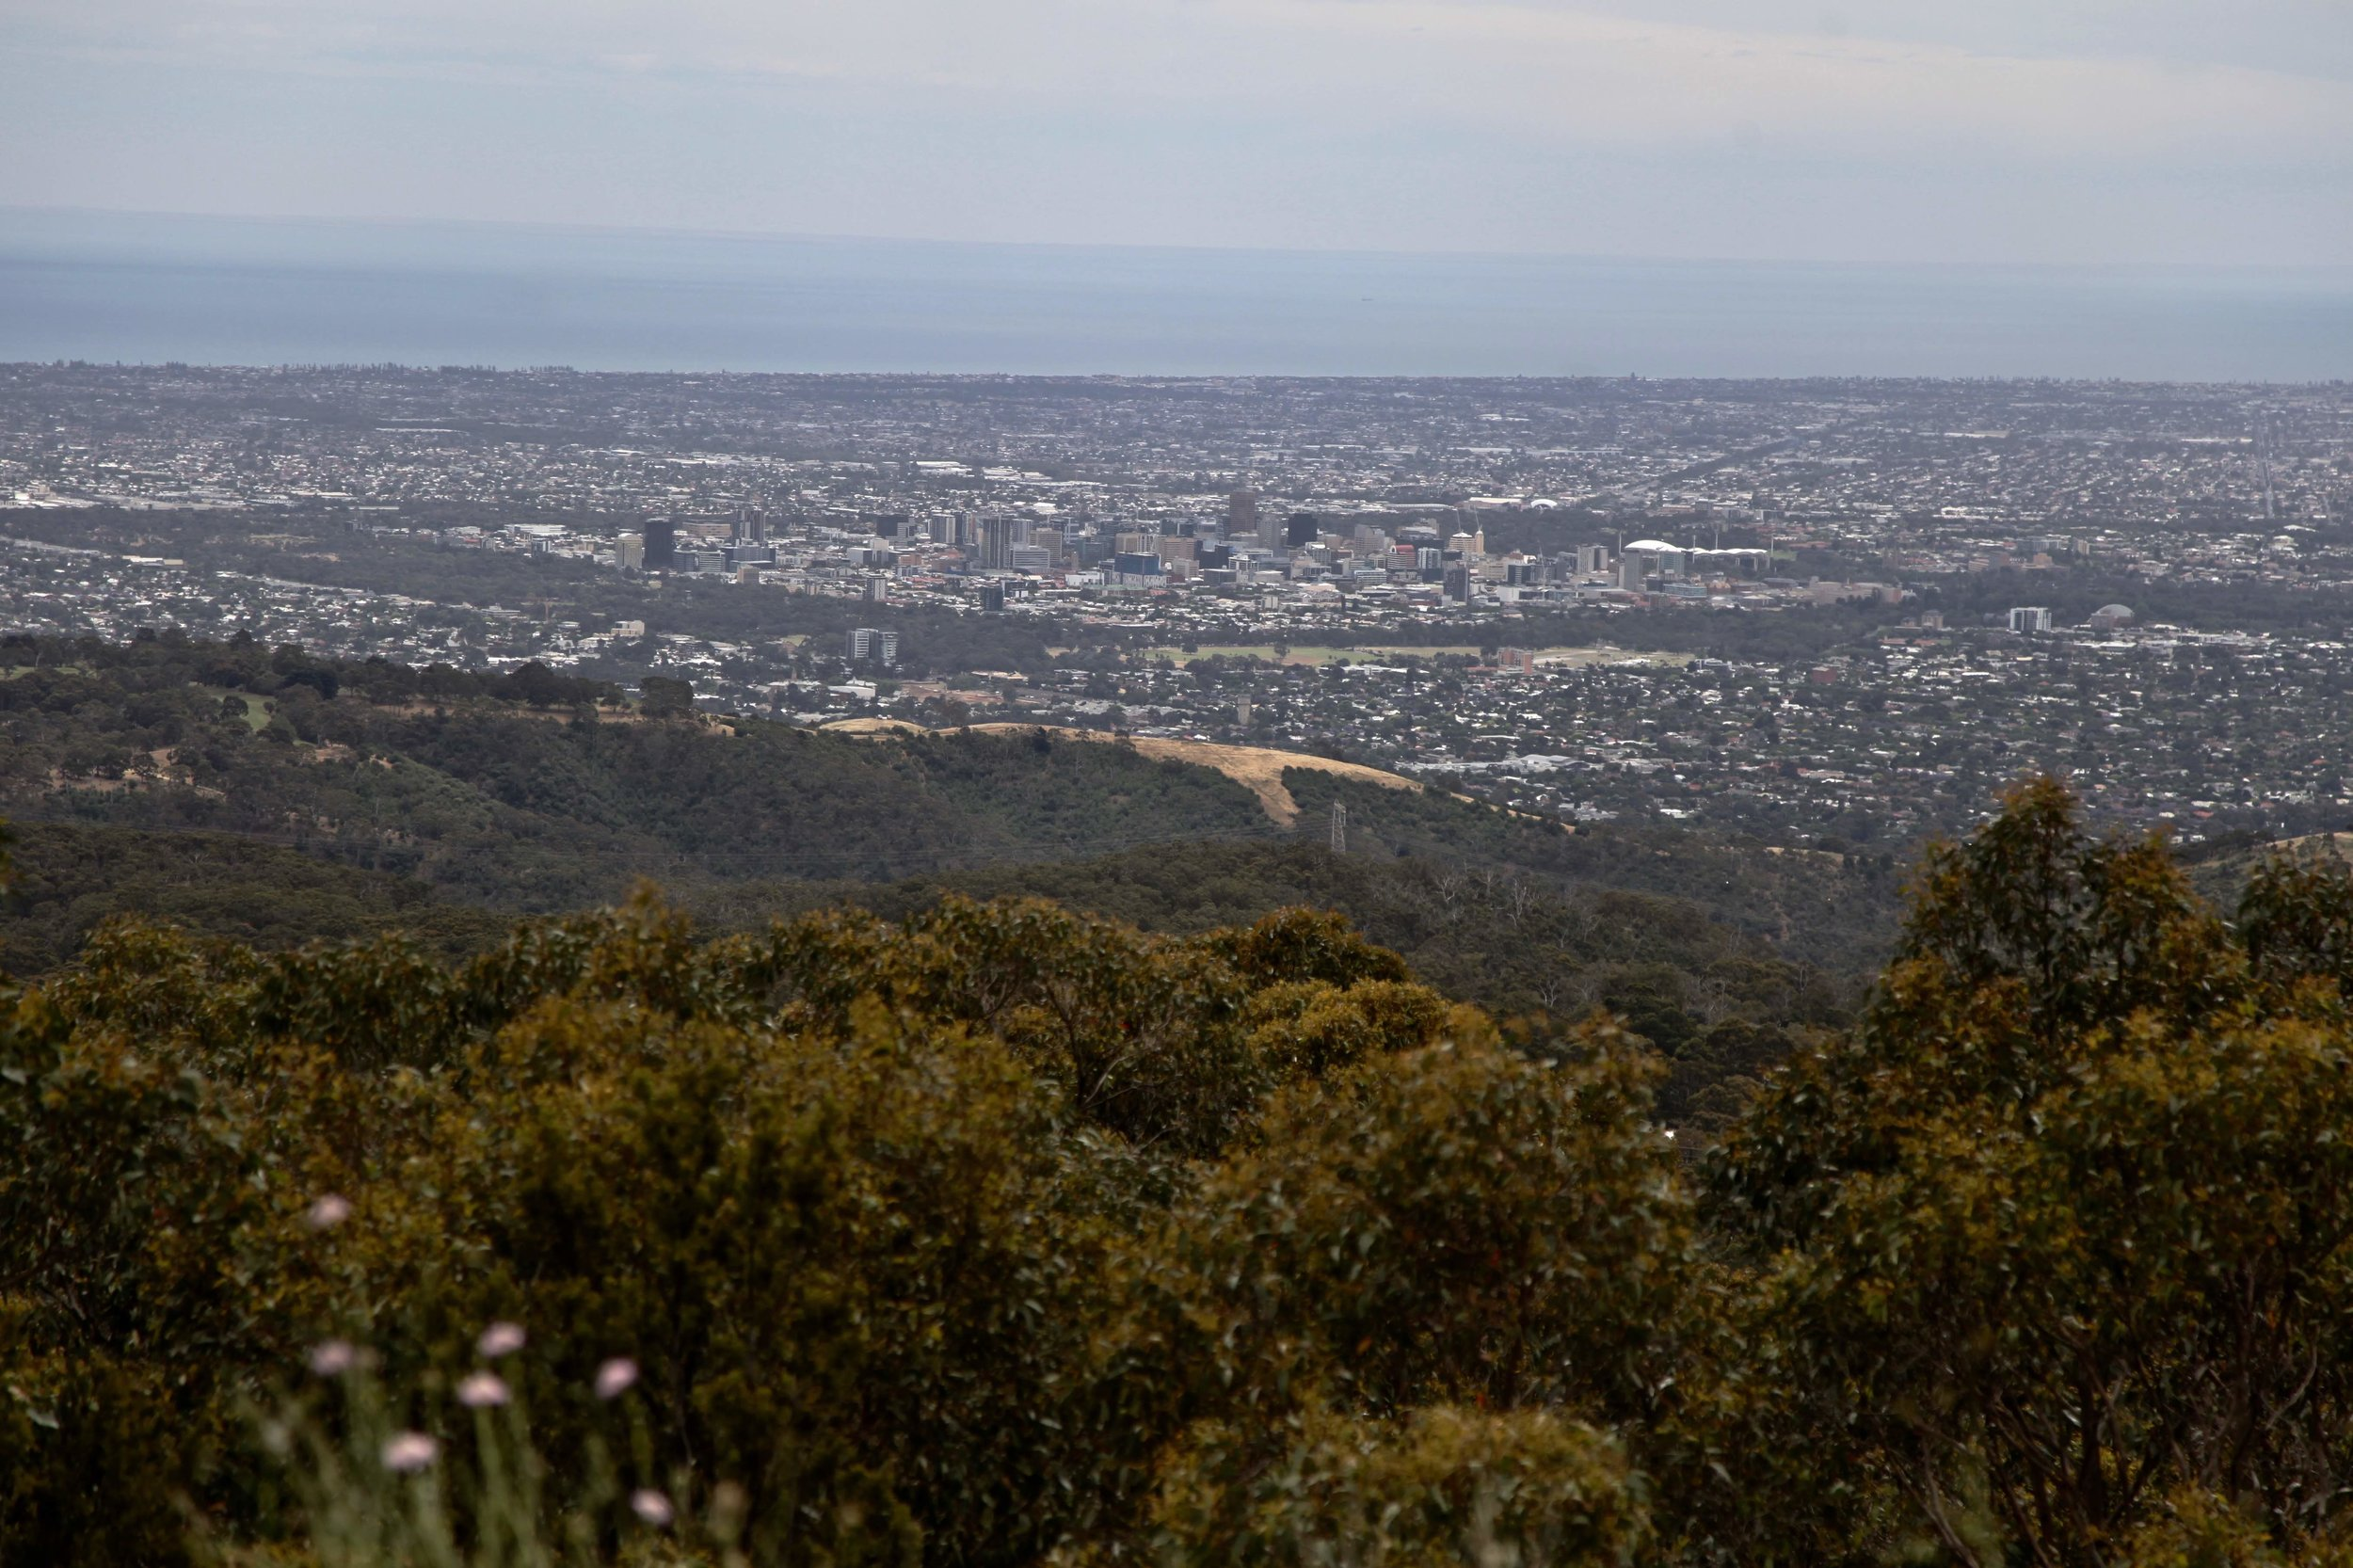 The view over Adelaide from Mt Lofty summit.